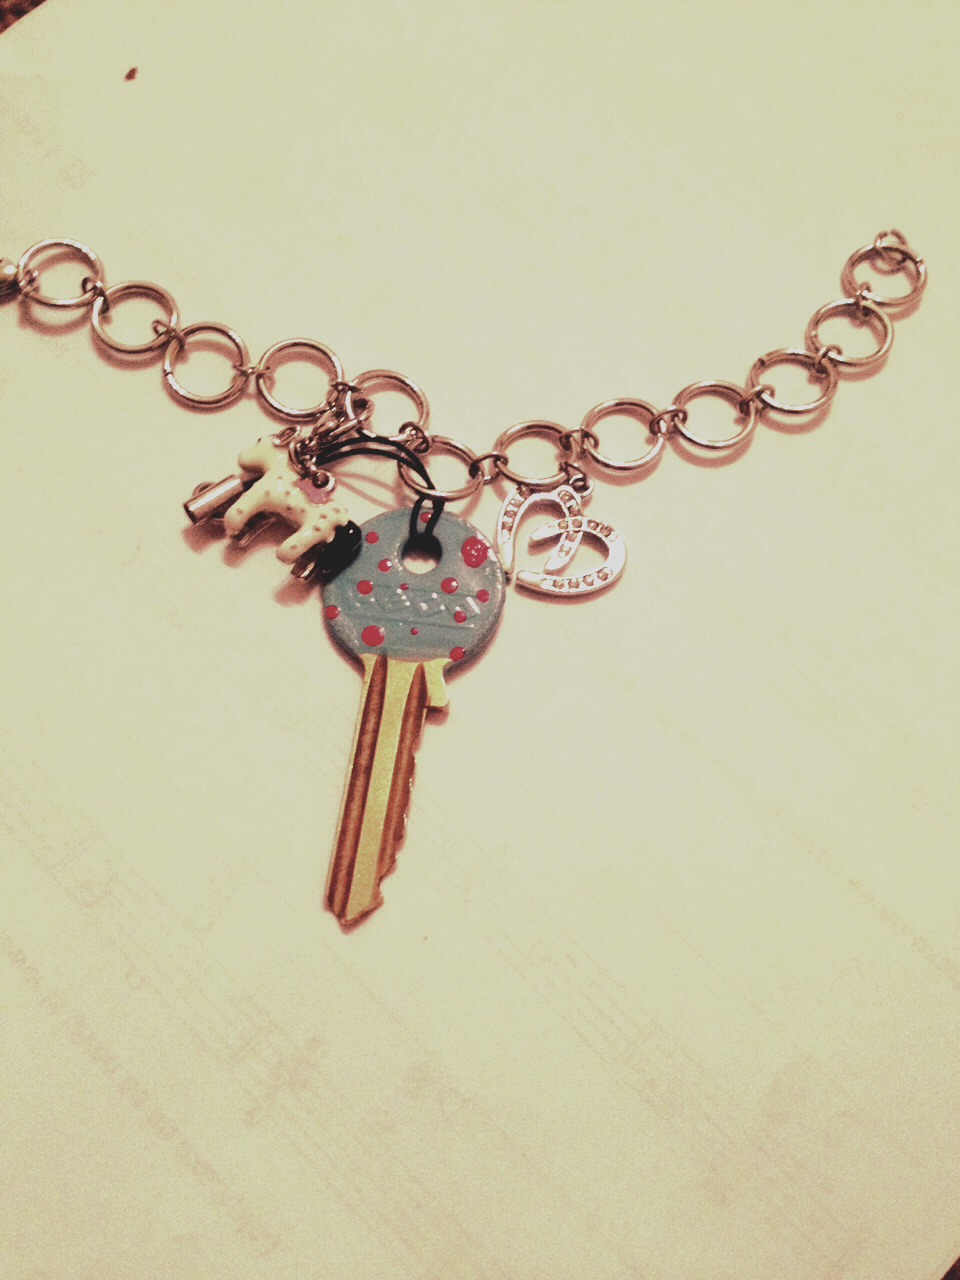 Now add your key using ribbon/string or what ever you can find to your bracelet and wear it with style. DONT FORGET TO LIKE AND SHARE :)